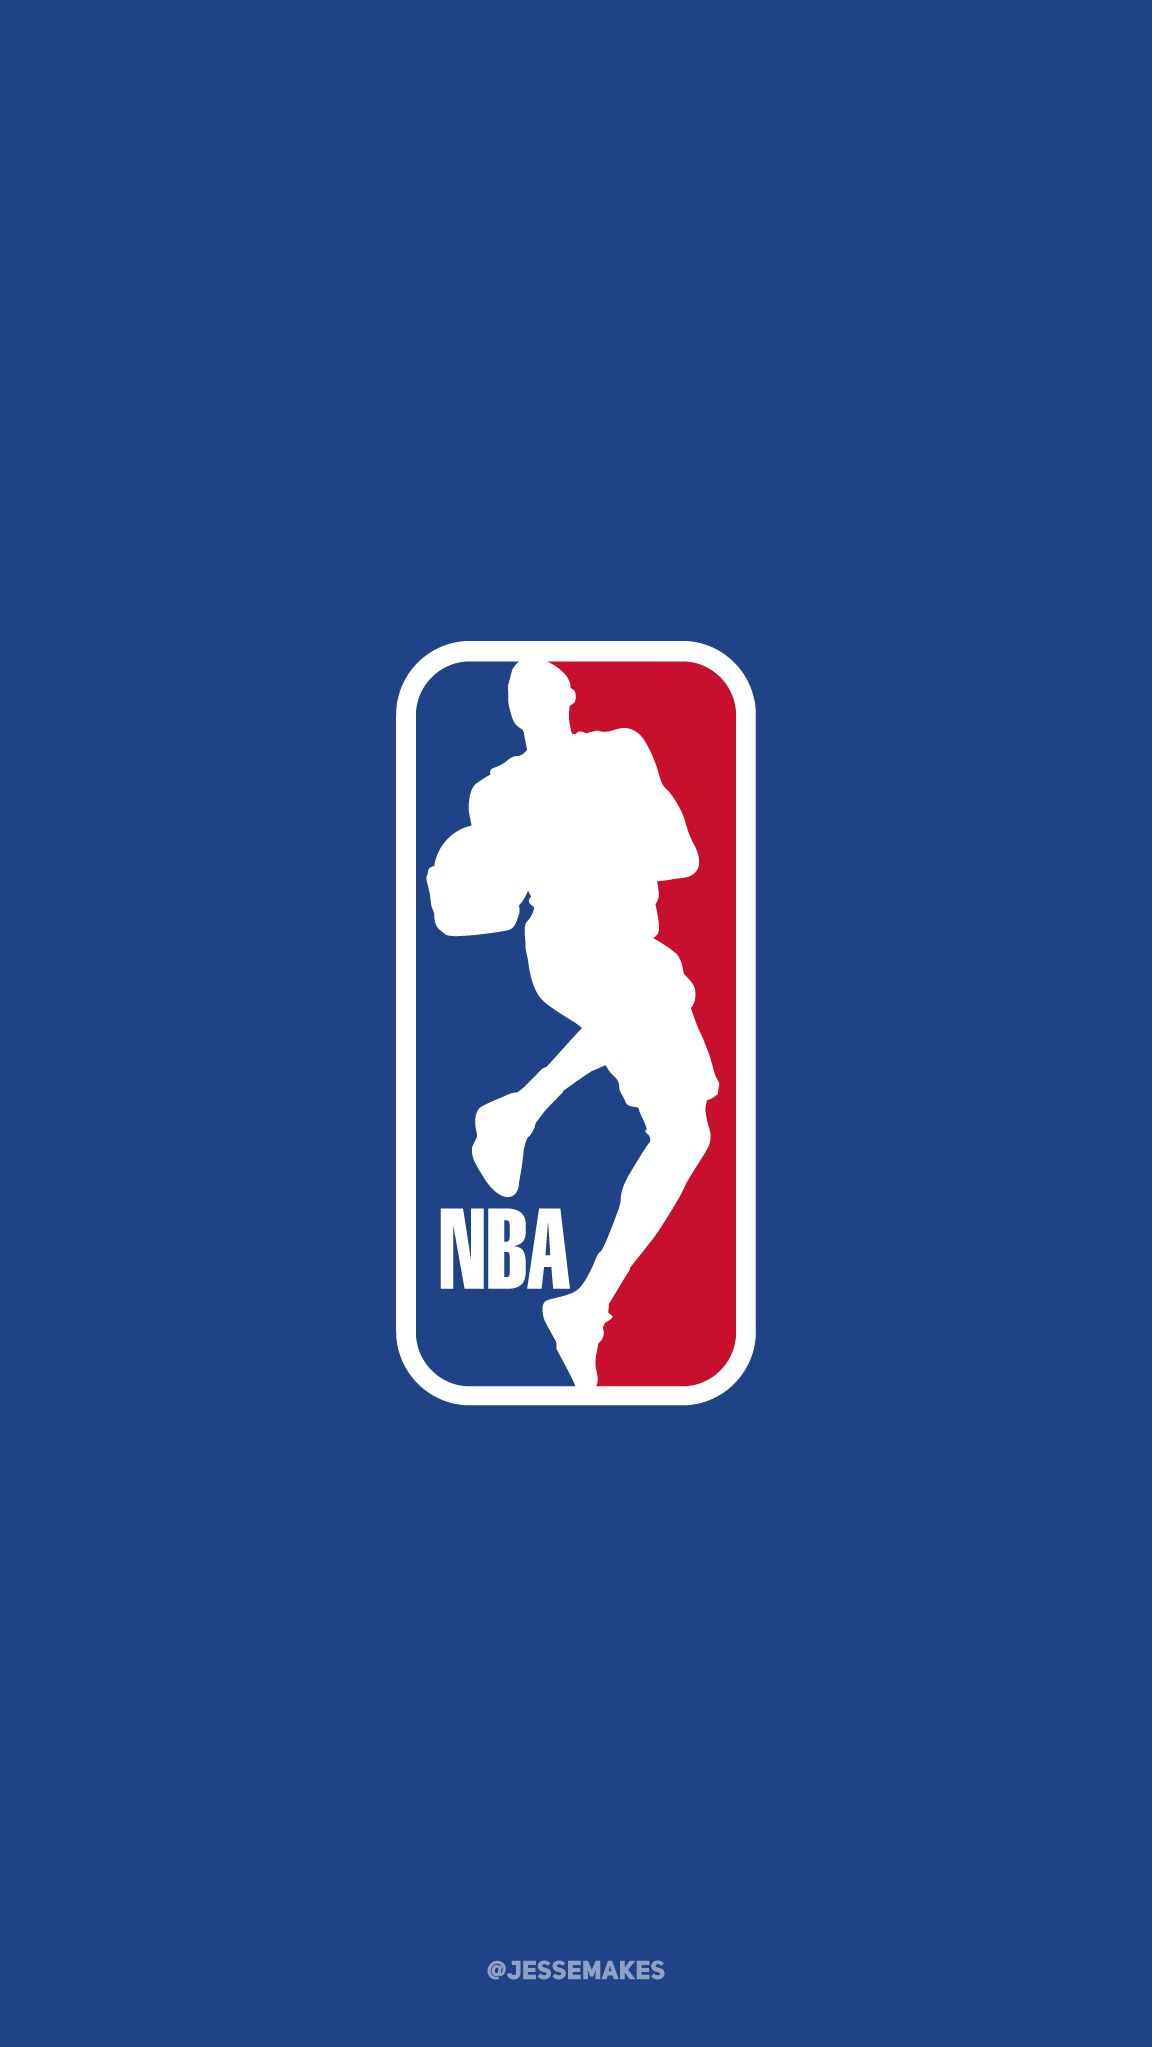 Paul George as the subject of the NBA logo  Part of my NBA